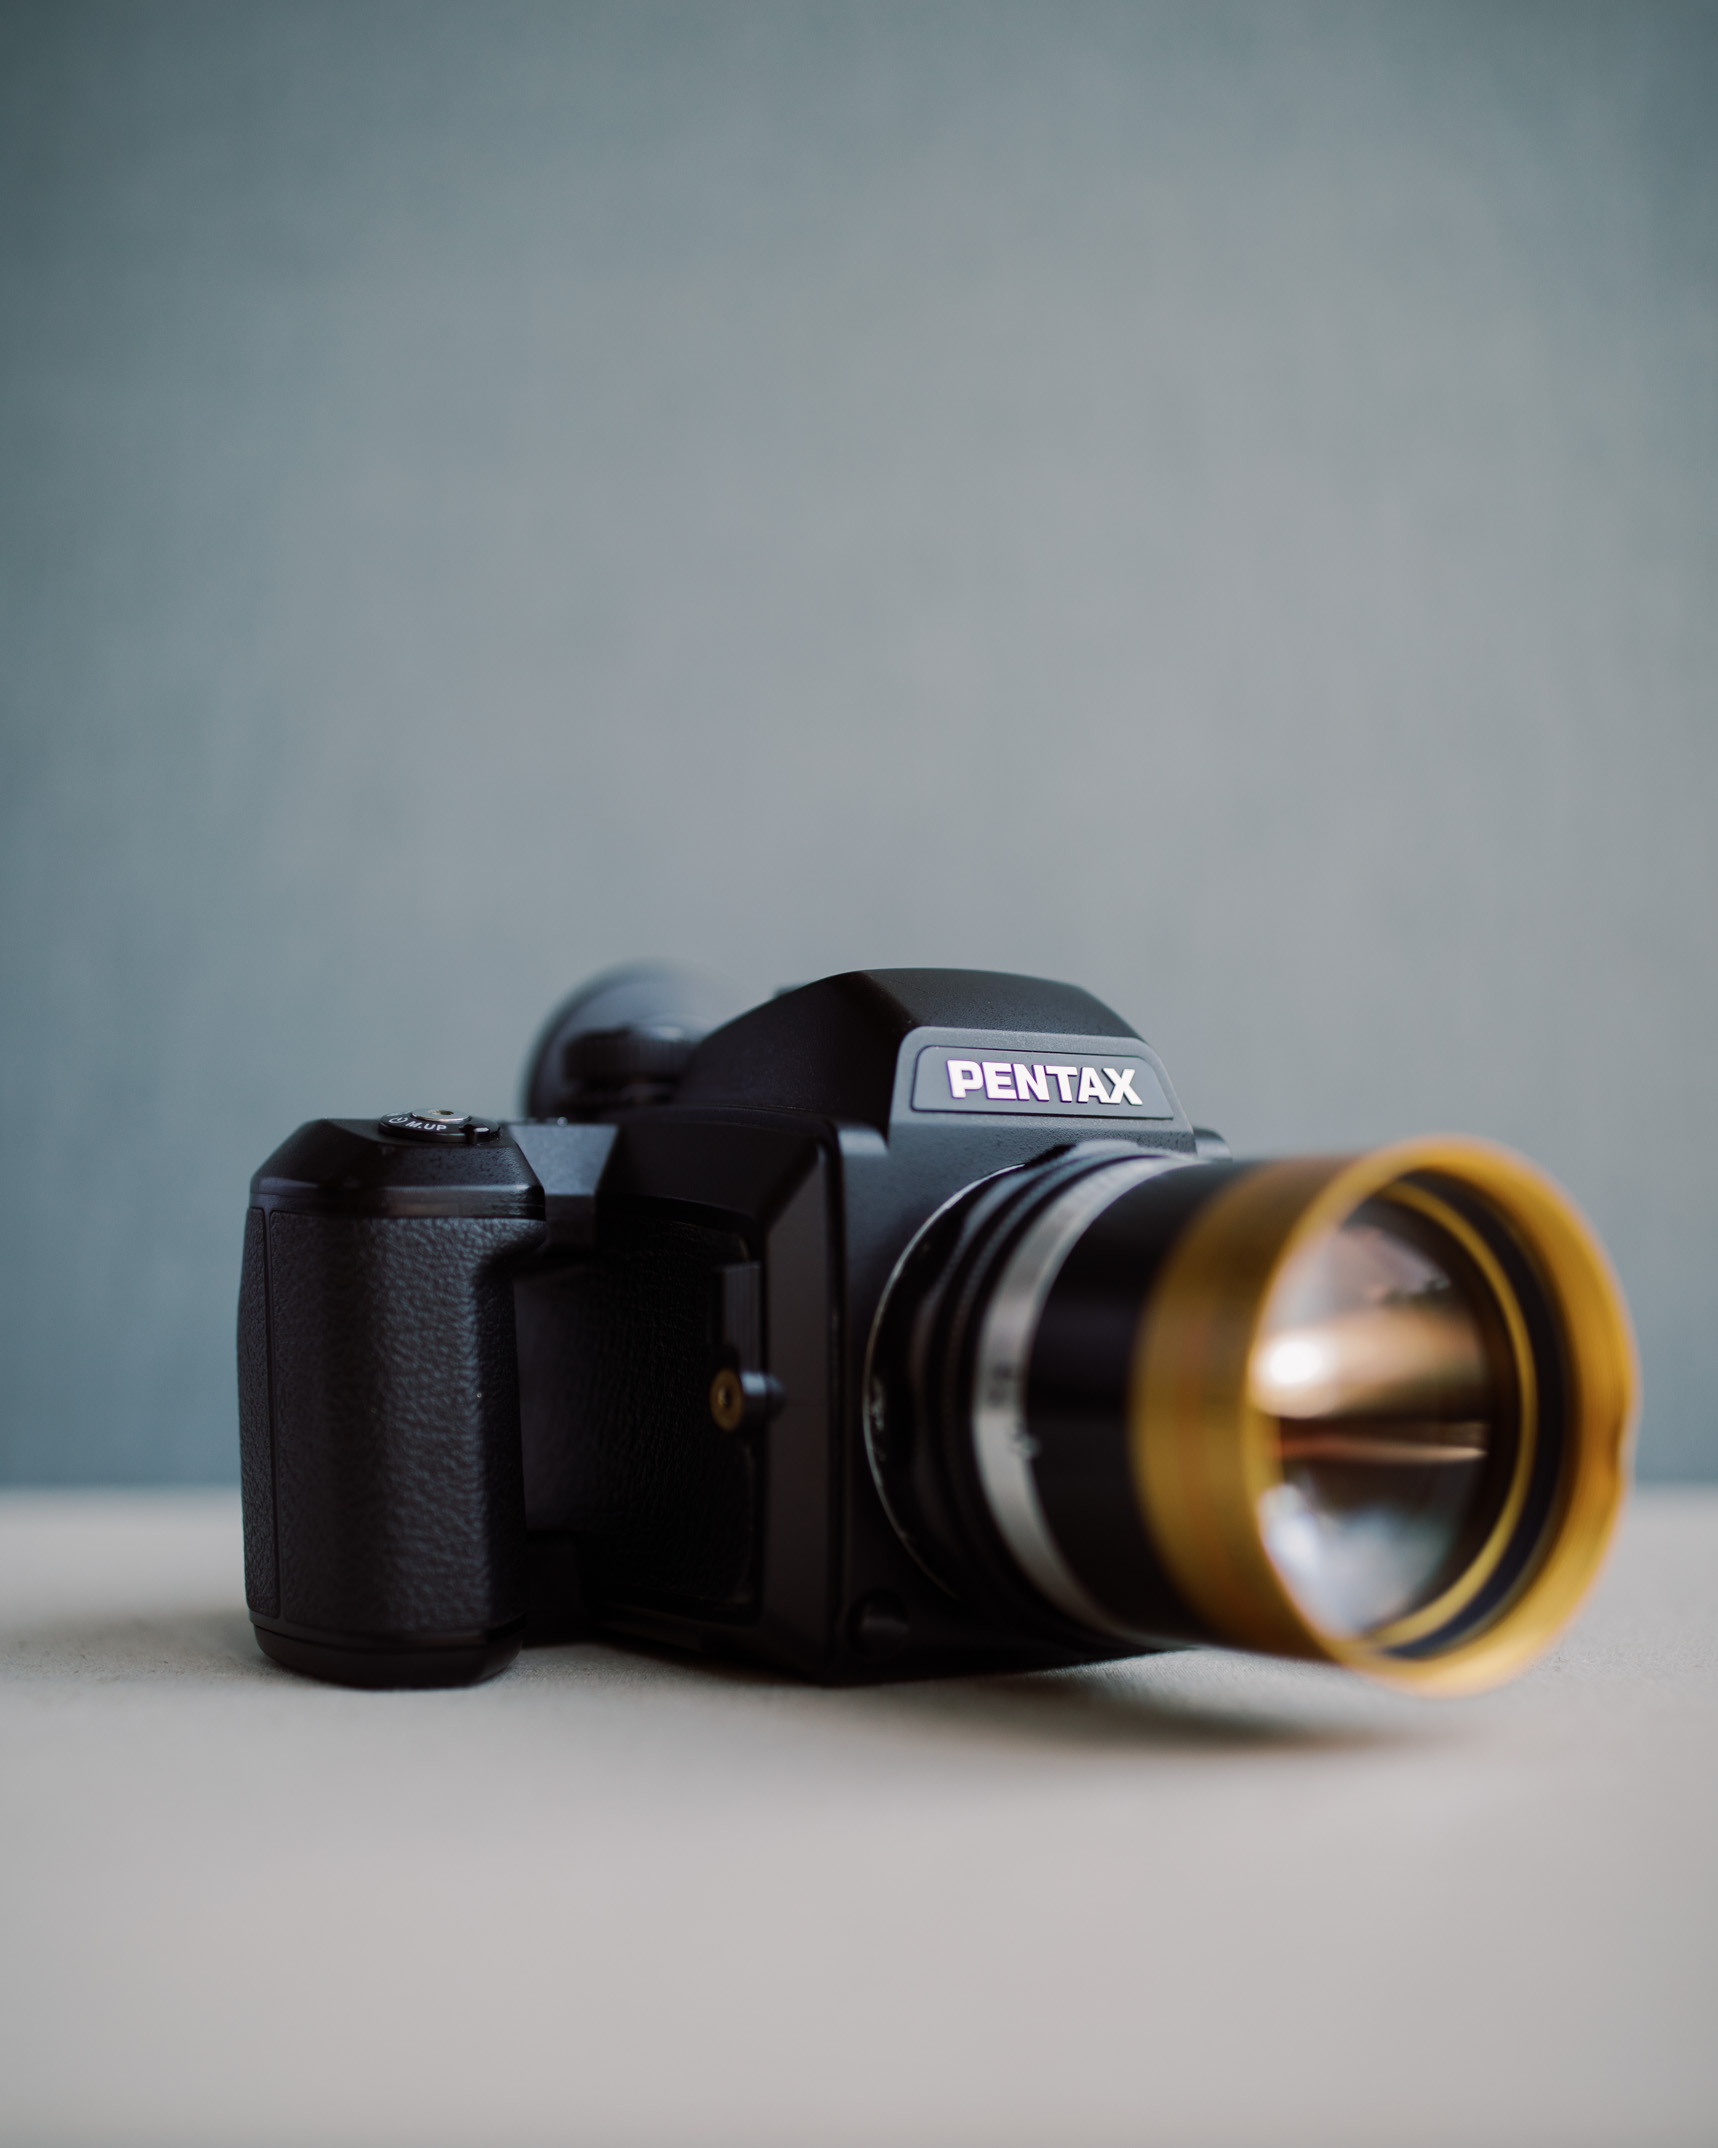 Pentax 645nii with Schneider Cine-Xenon 120mm f/2 Projector Lens from  The Boutique Lens